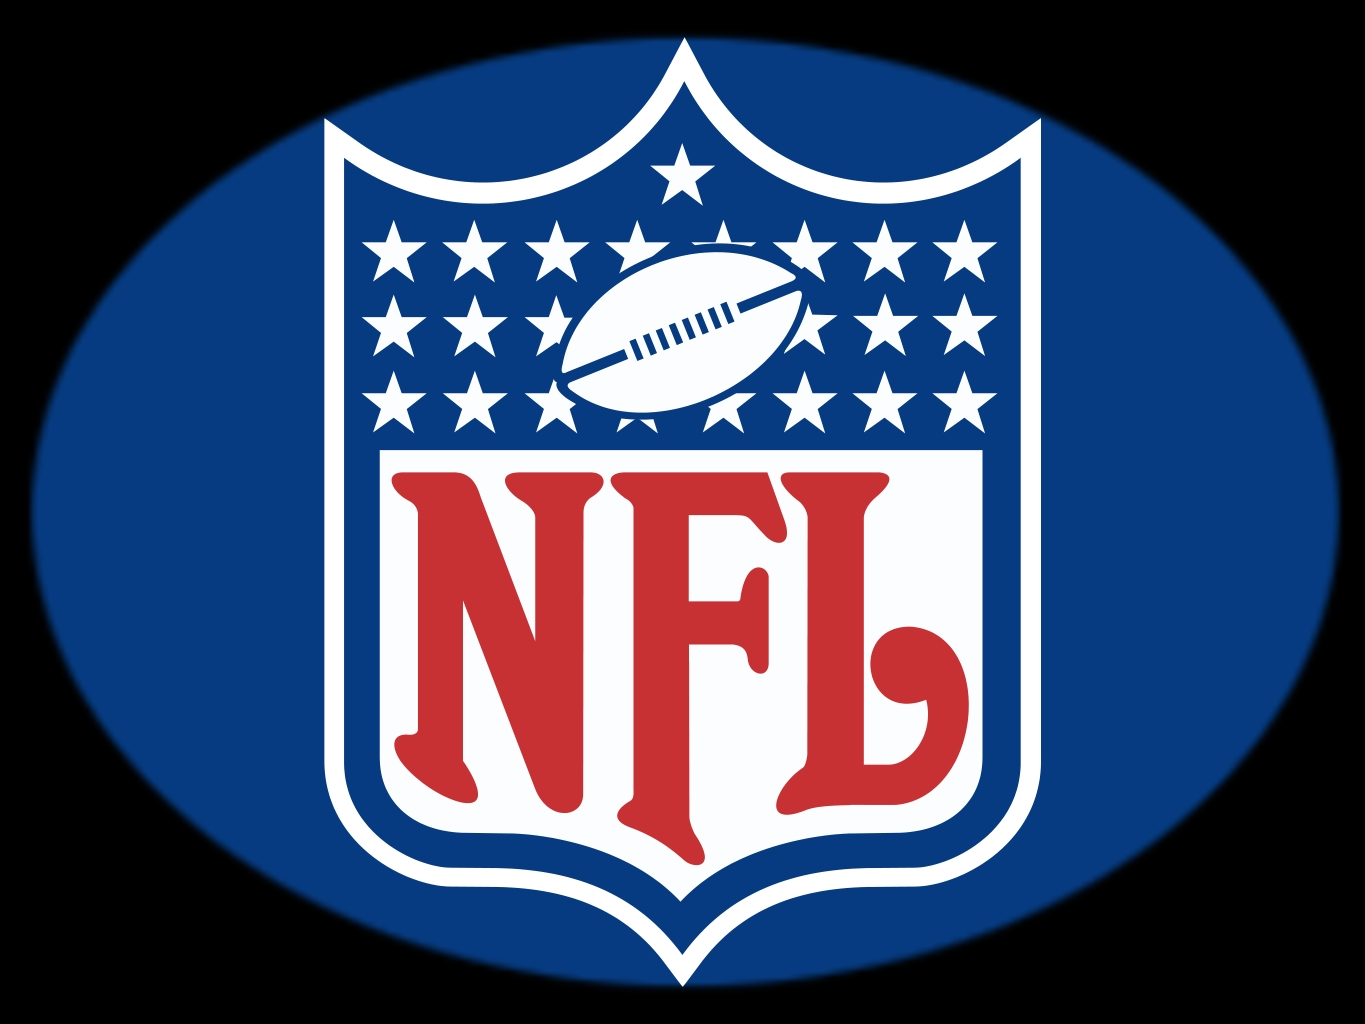 NFL Team Logos   Photo 283 of 416 phombocom 1365x1024